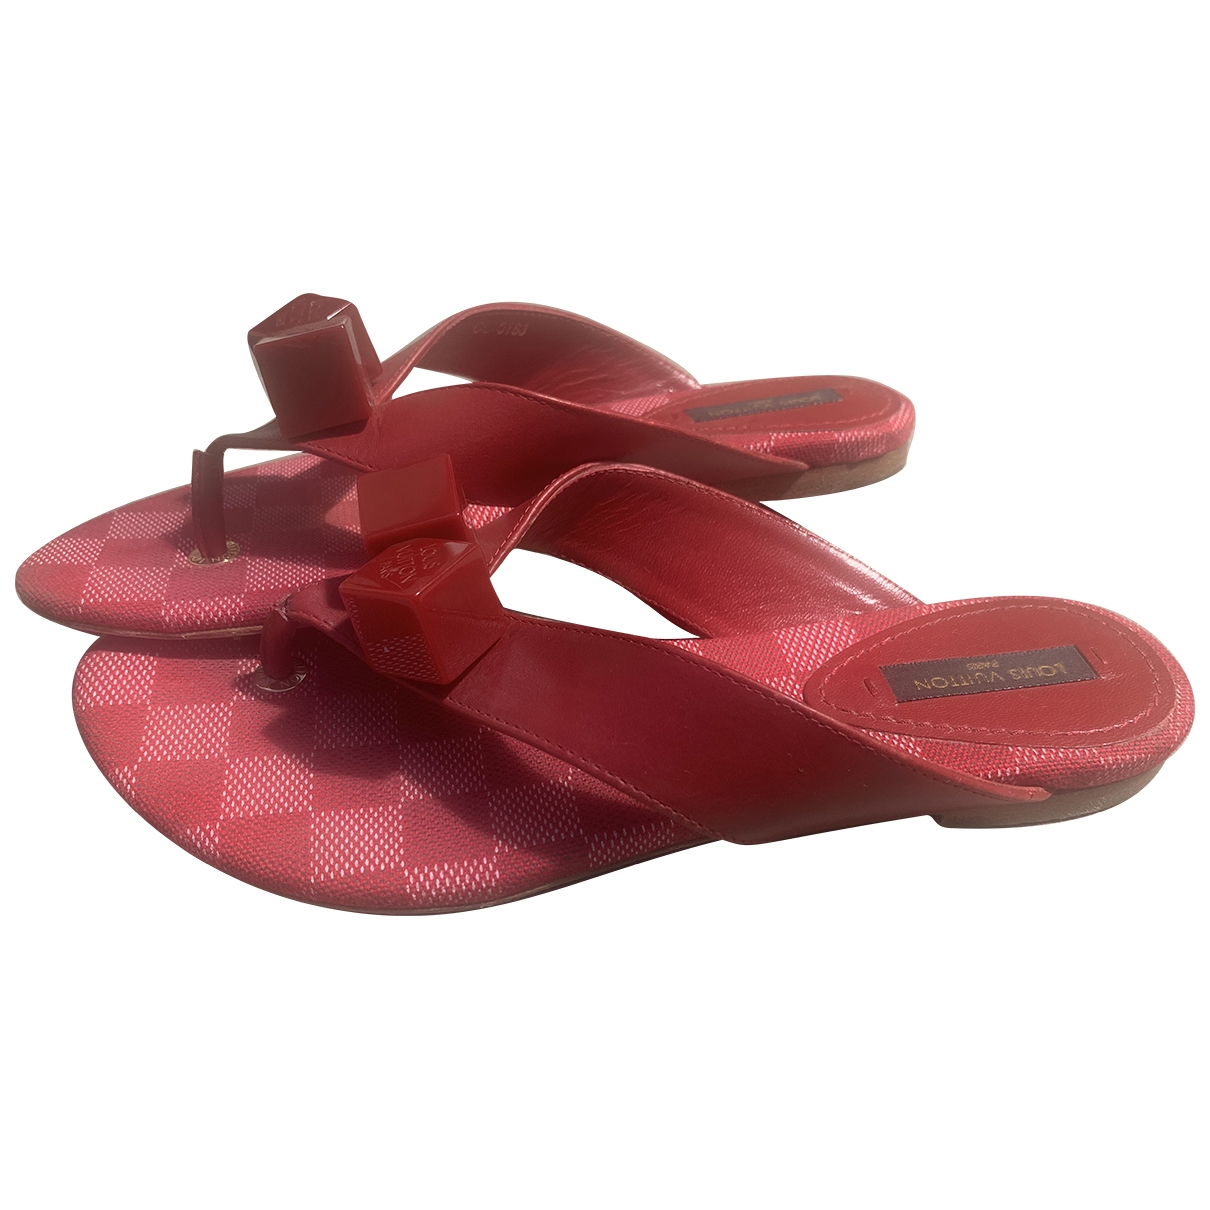 Louis Vuitton \N Red Leather Sandals for Women 36 EU